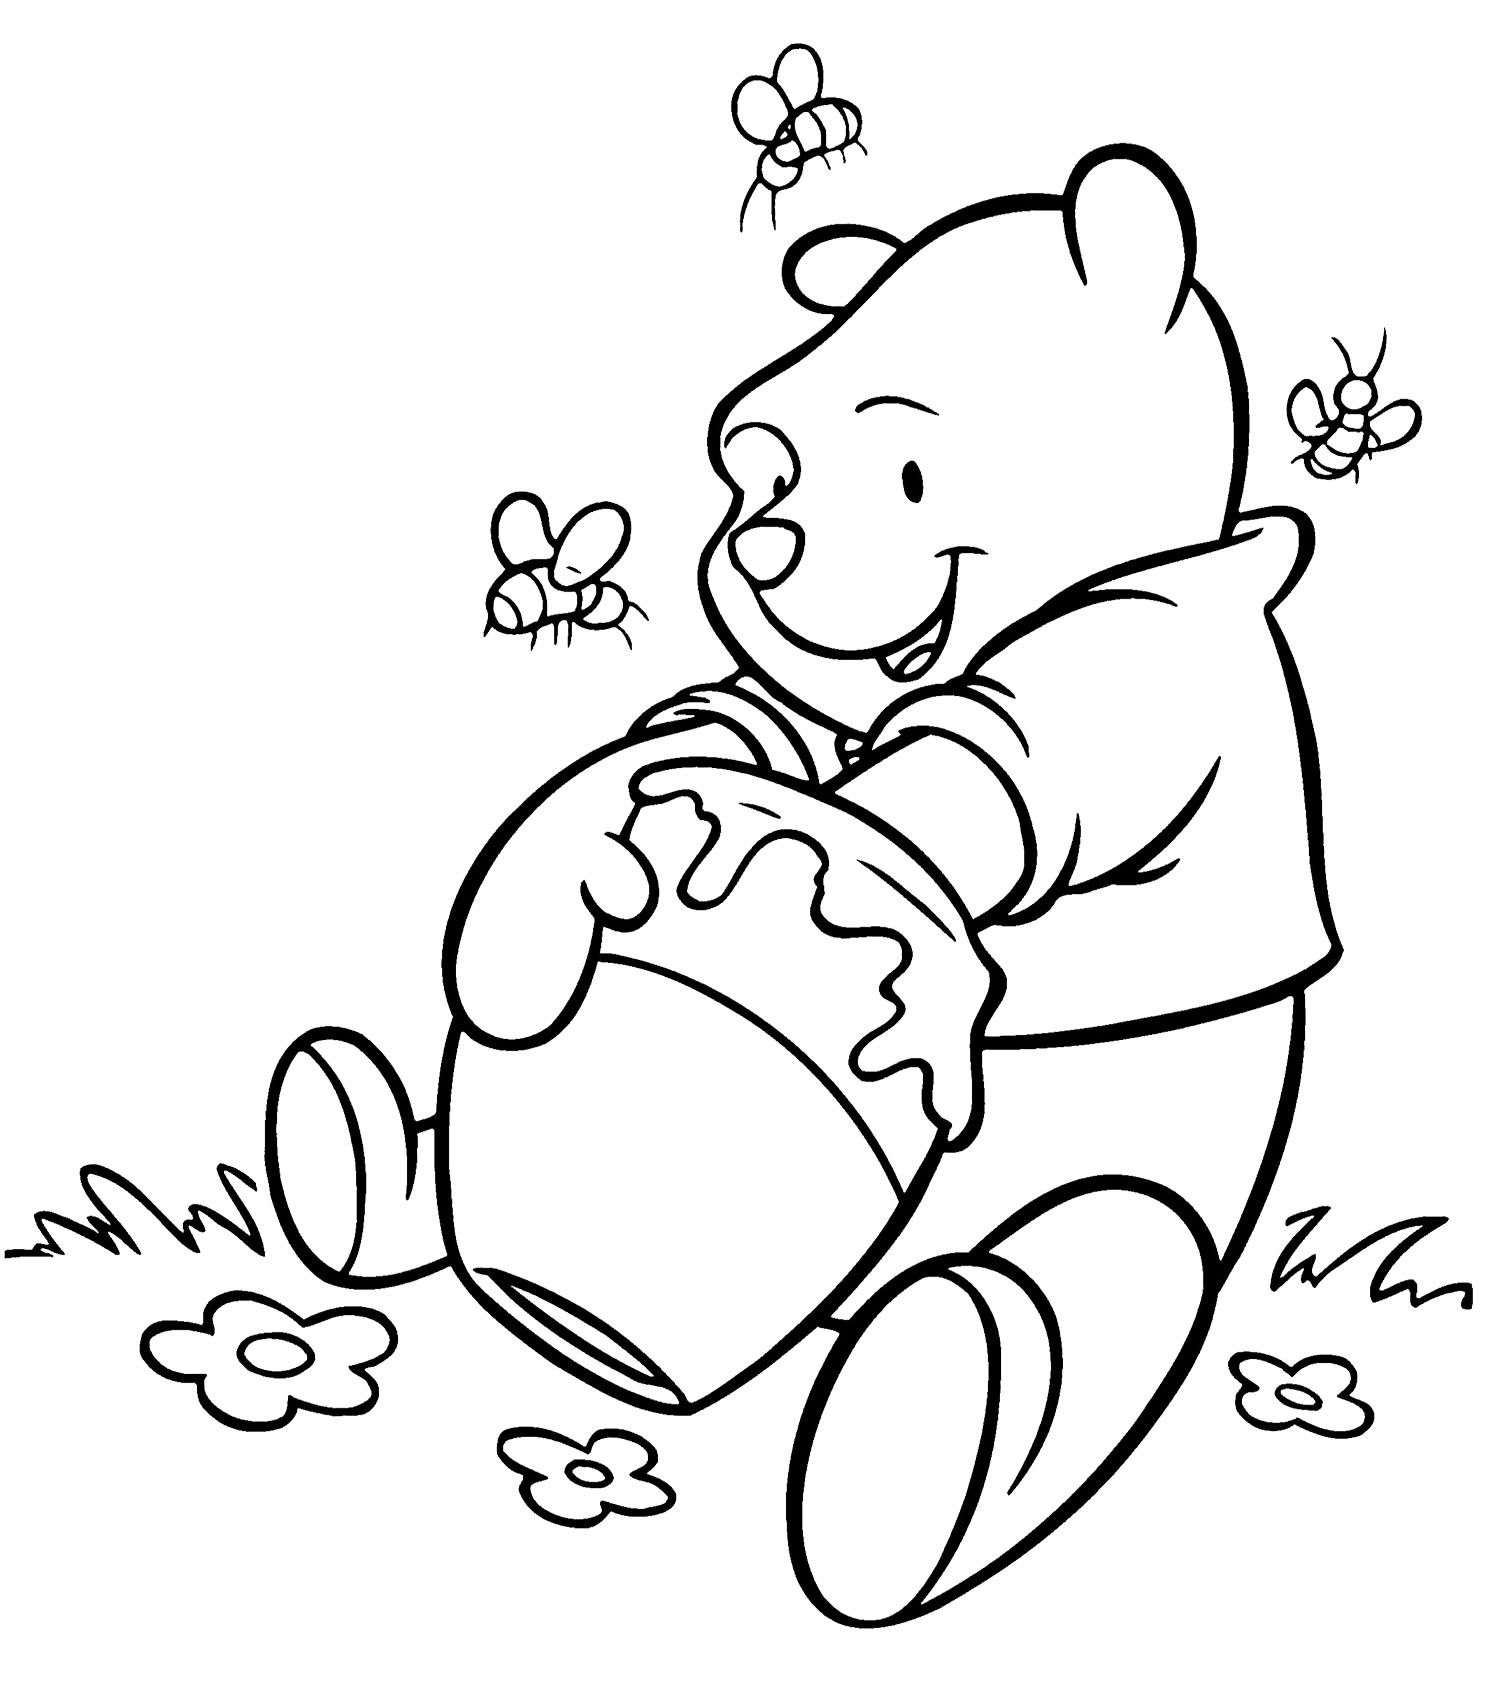 Honey clipart coloring page. Winnie the pooh getting